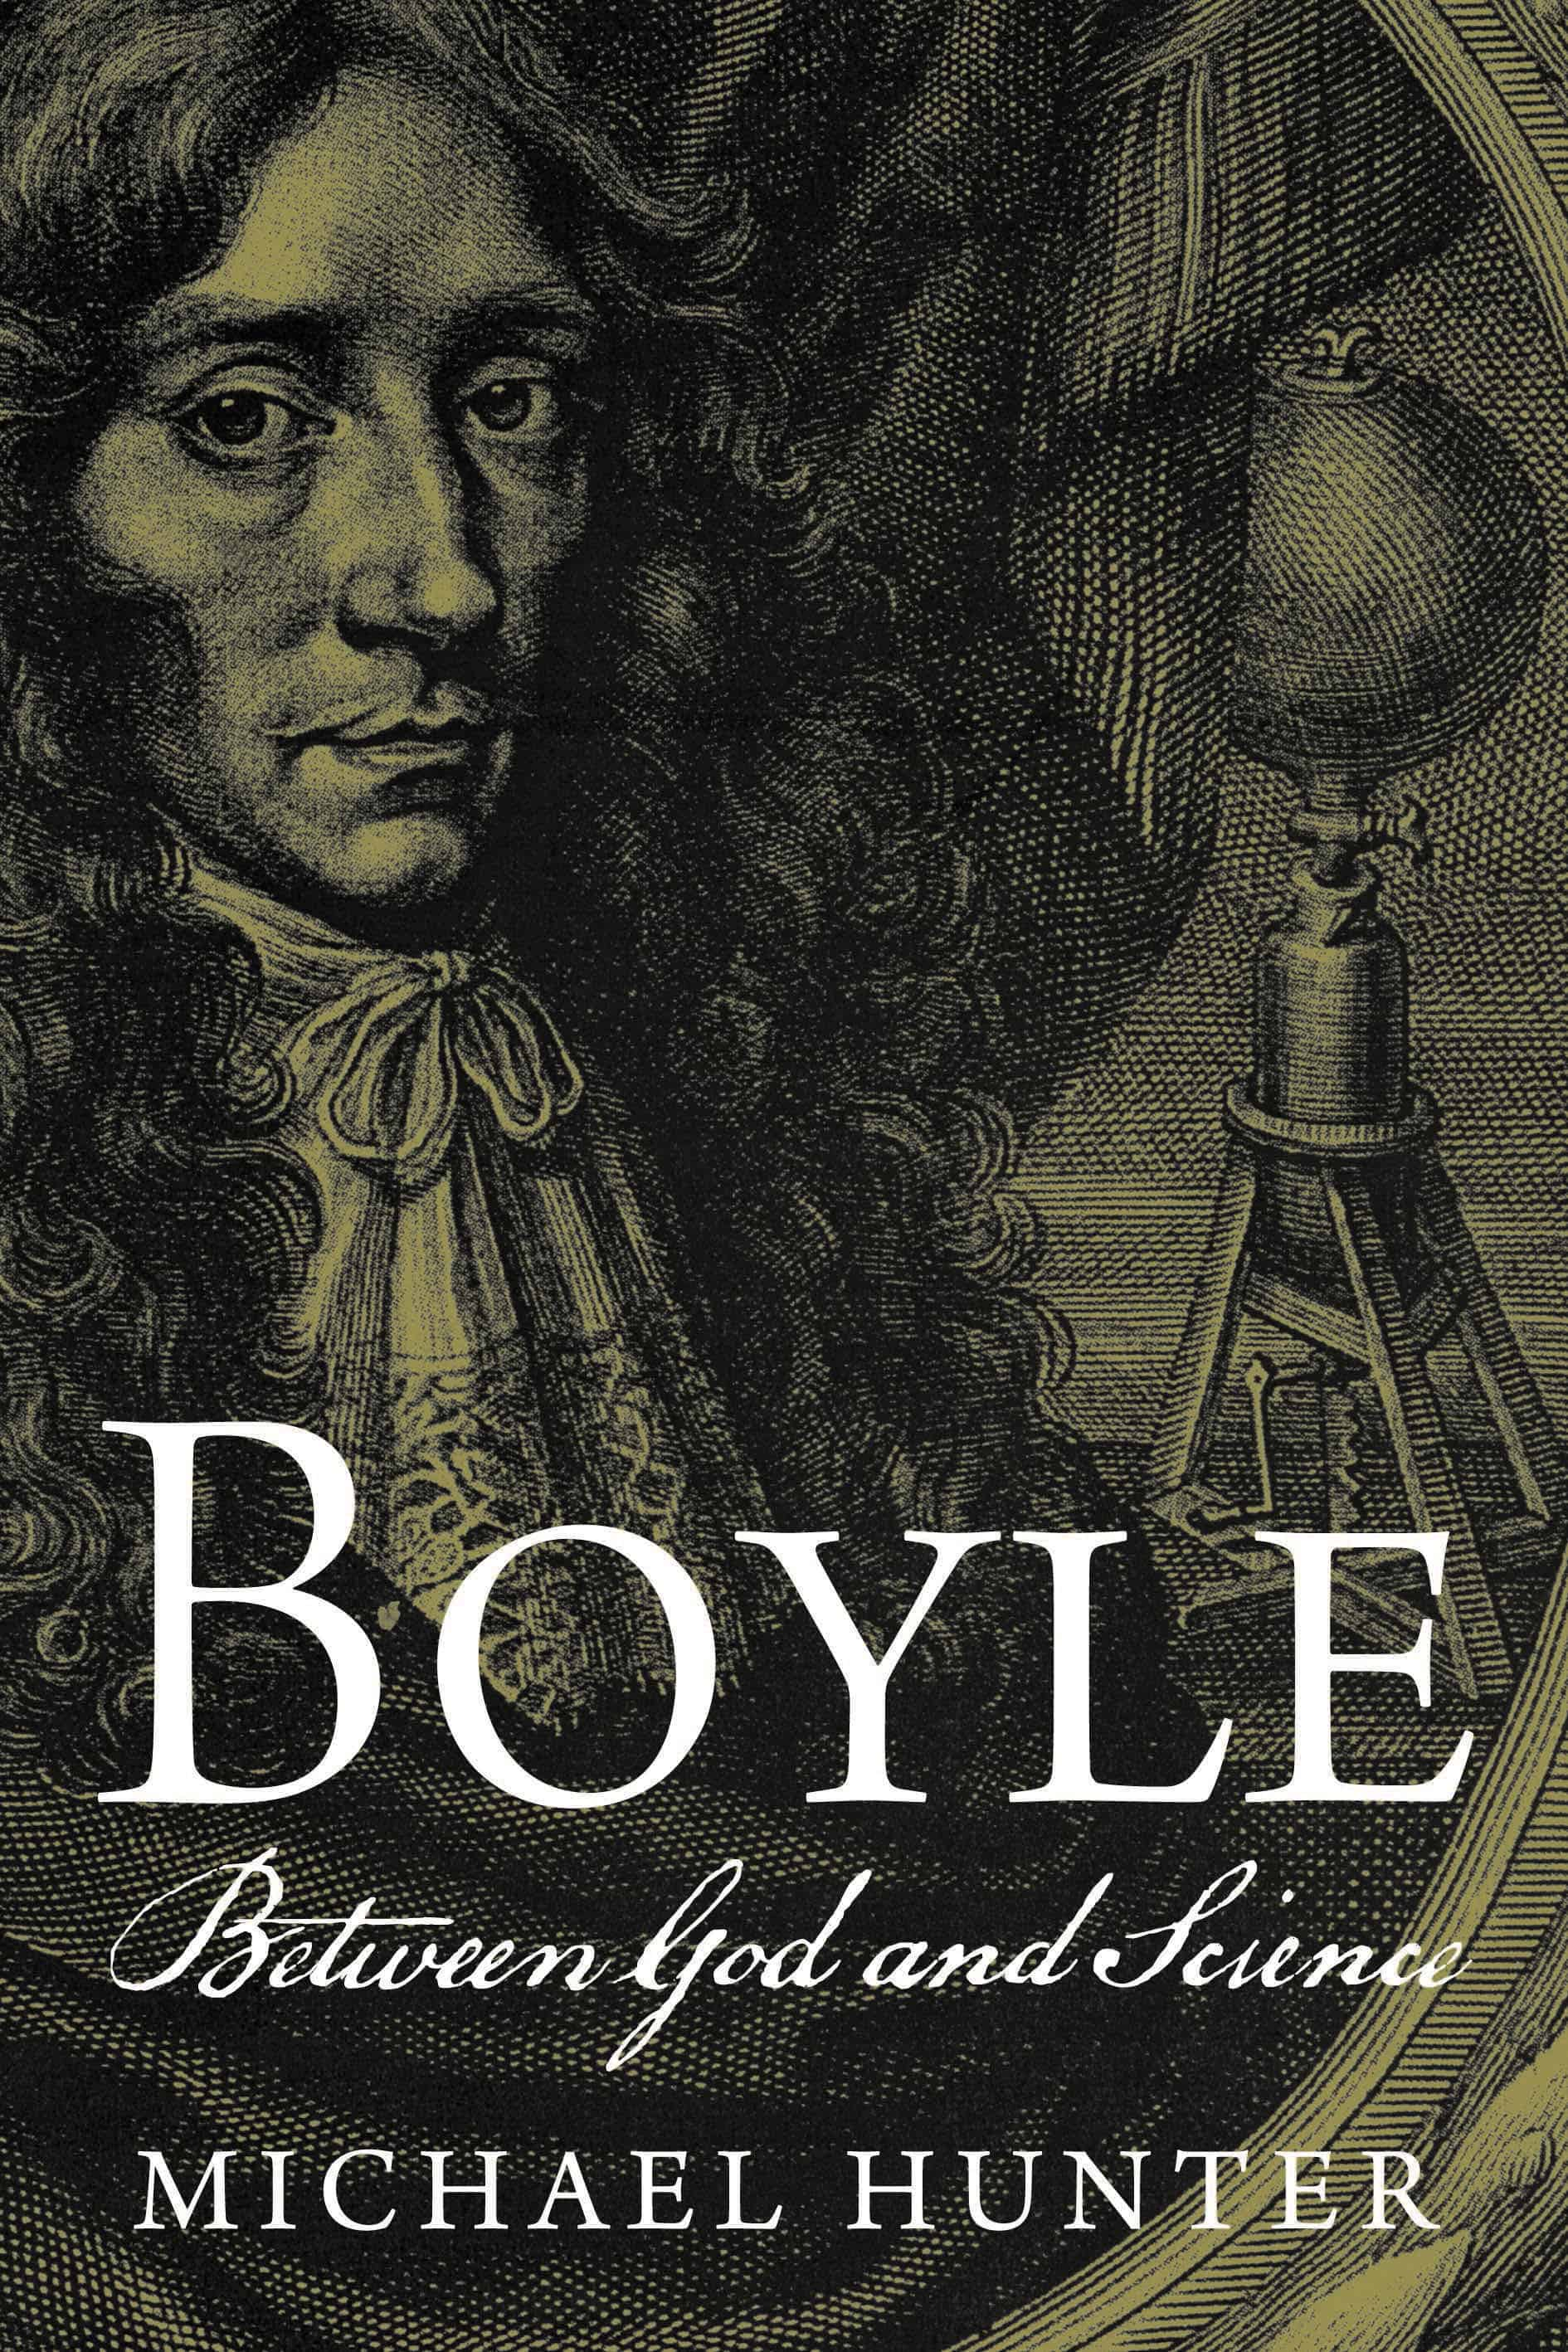 Boyle Book Cover - Boyle: Between God and Science